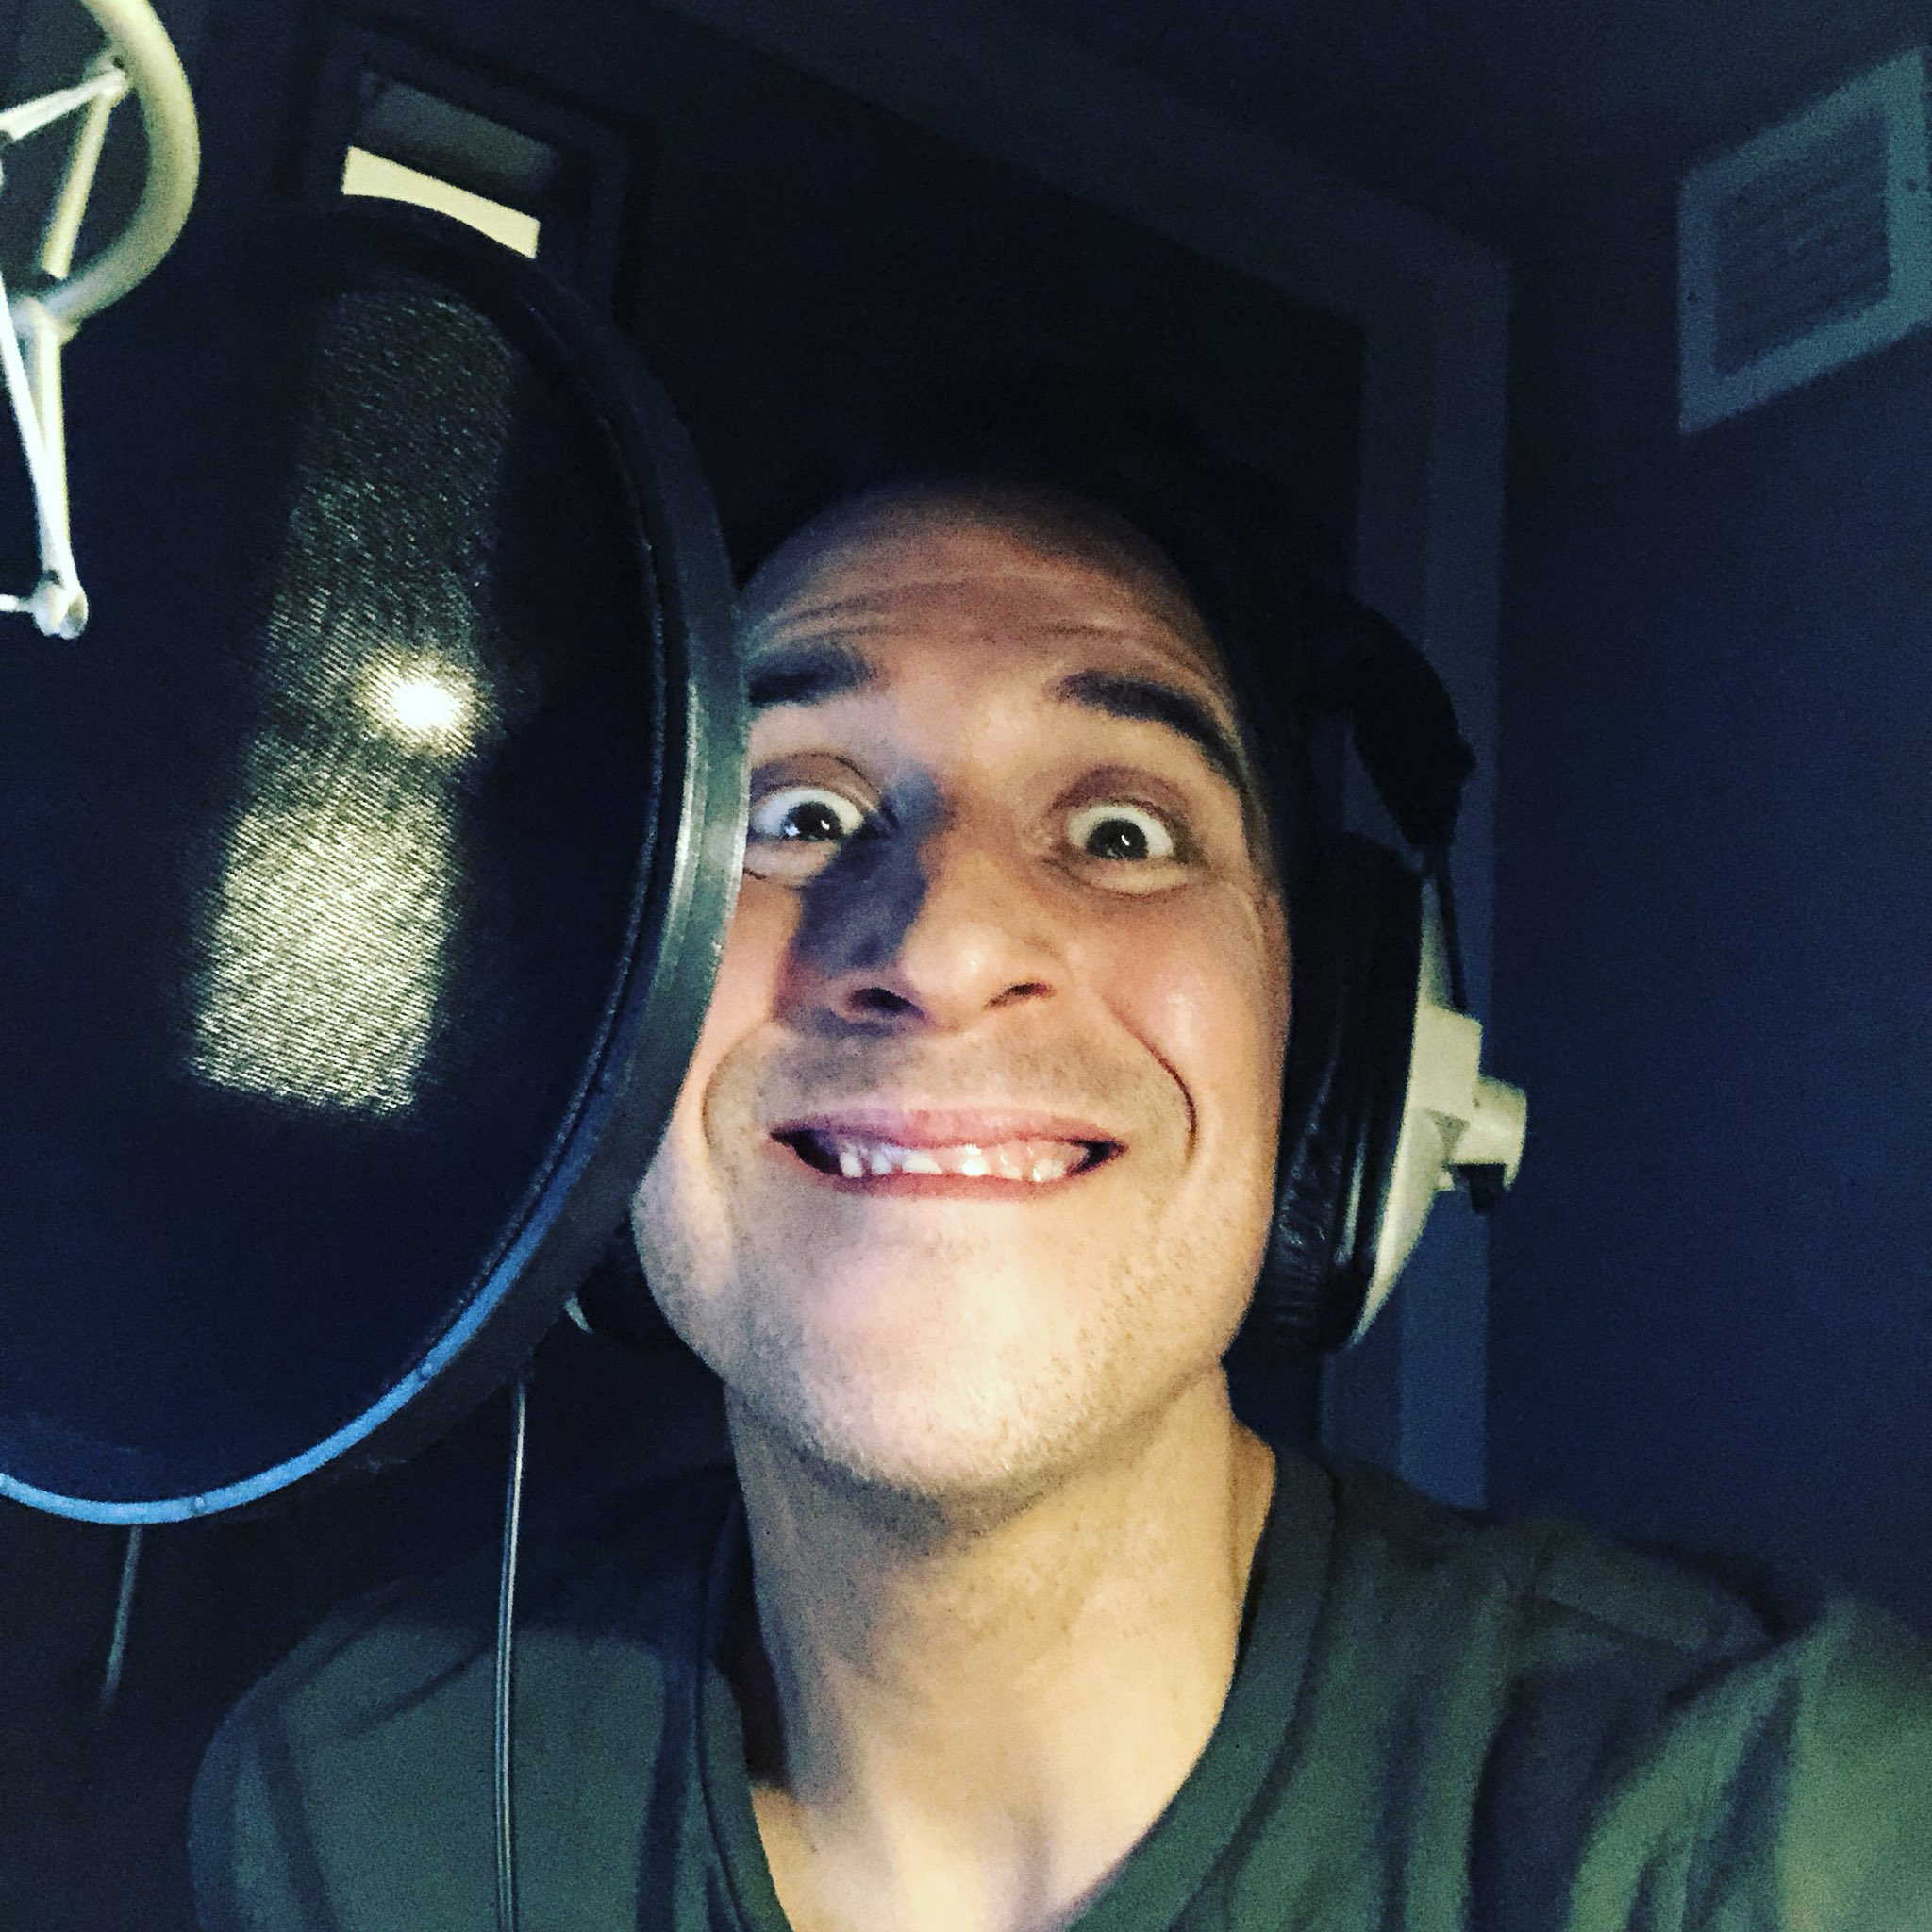 Going wild in the voiceover booth for @E4Tweets @#FiveStarHotel https://t.co/M848lscWBa